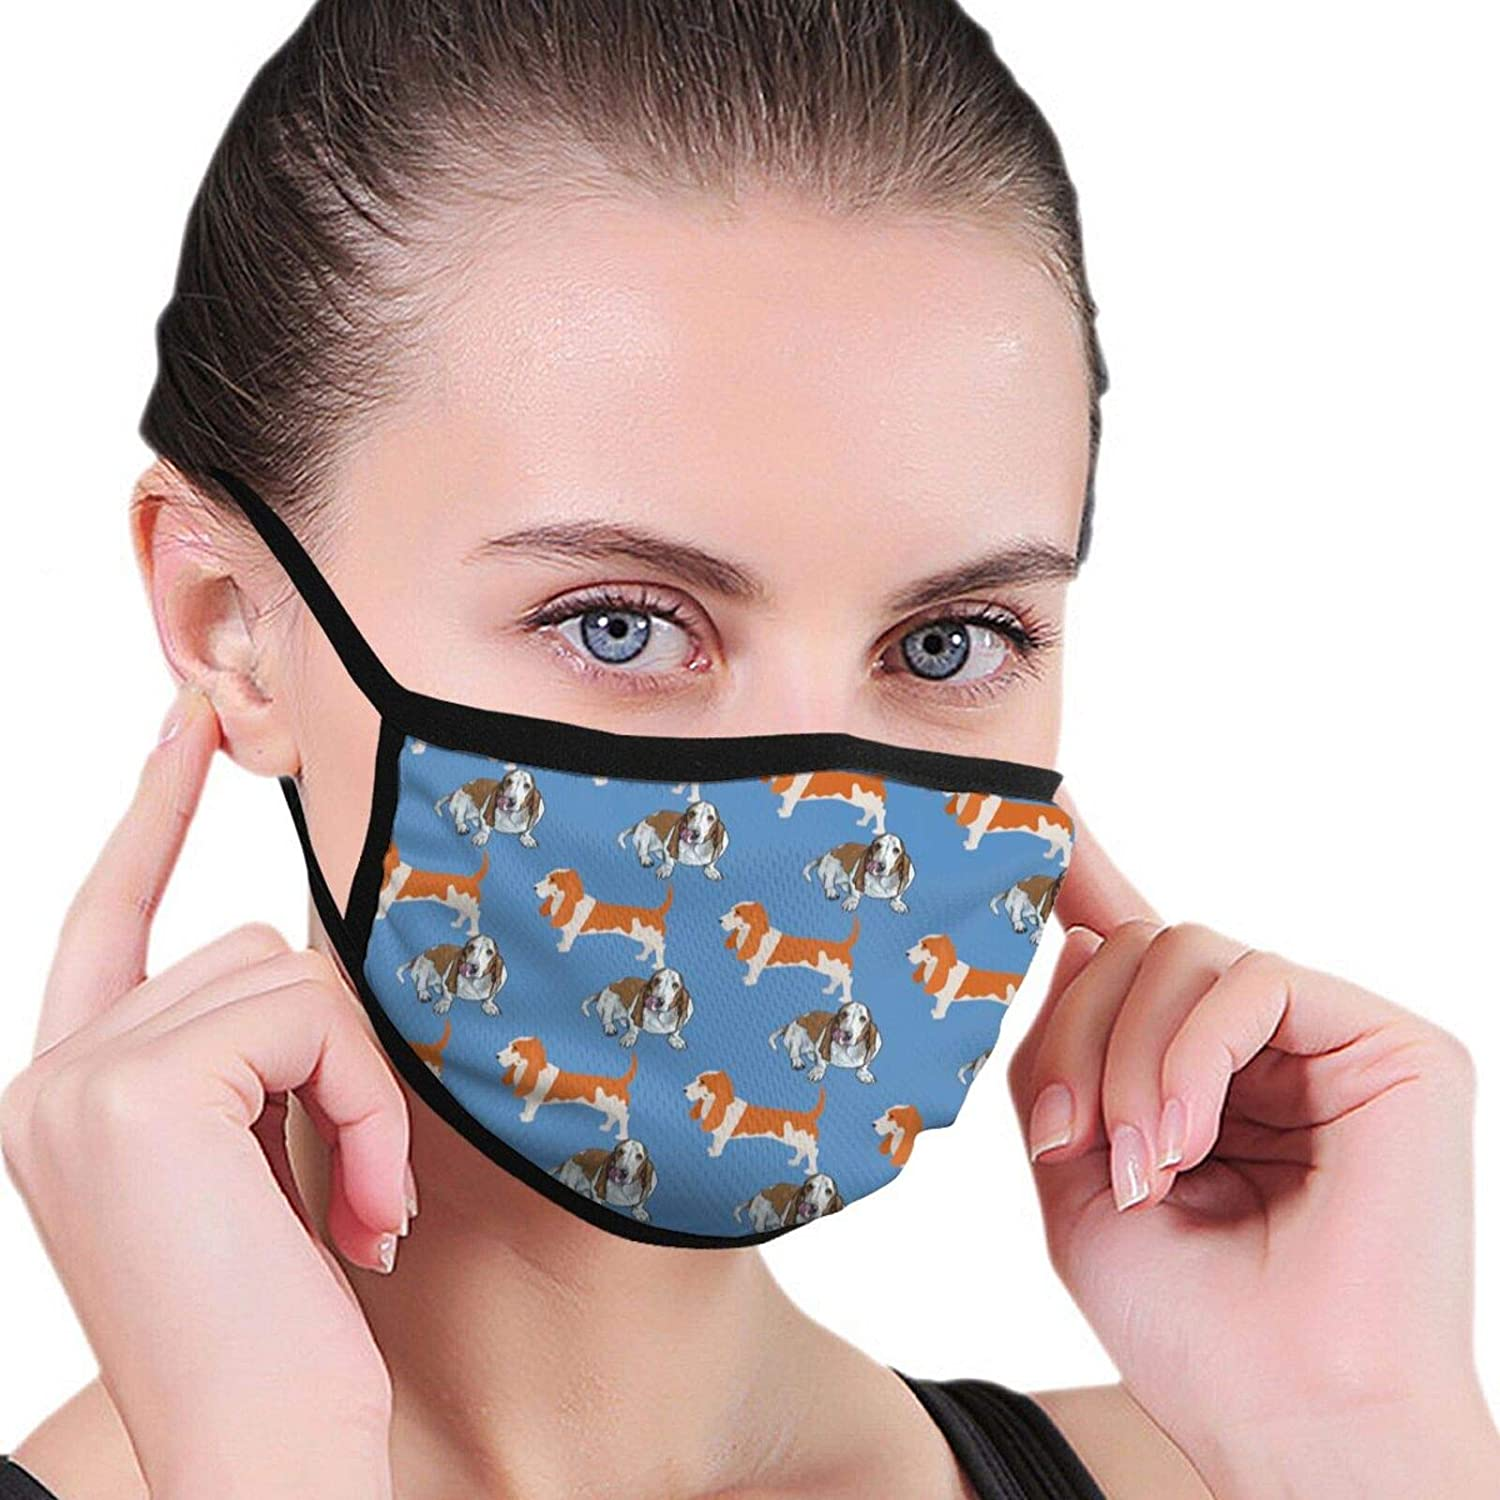 LANJYF 2 Packs Anti-Dust Basset Hound Dog Facial Covering Mouth Protection Unisex Cotton